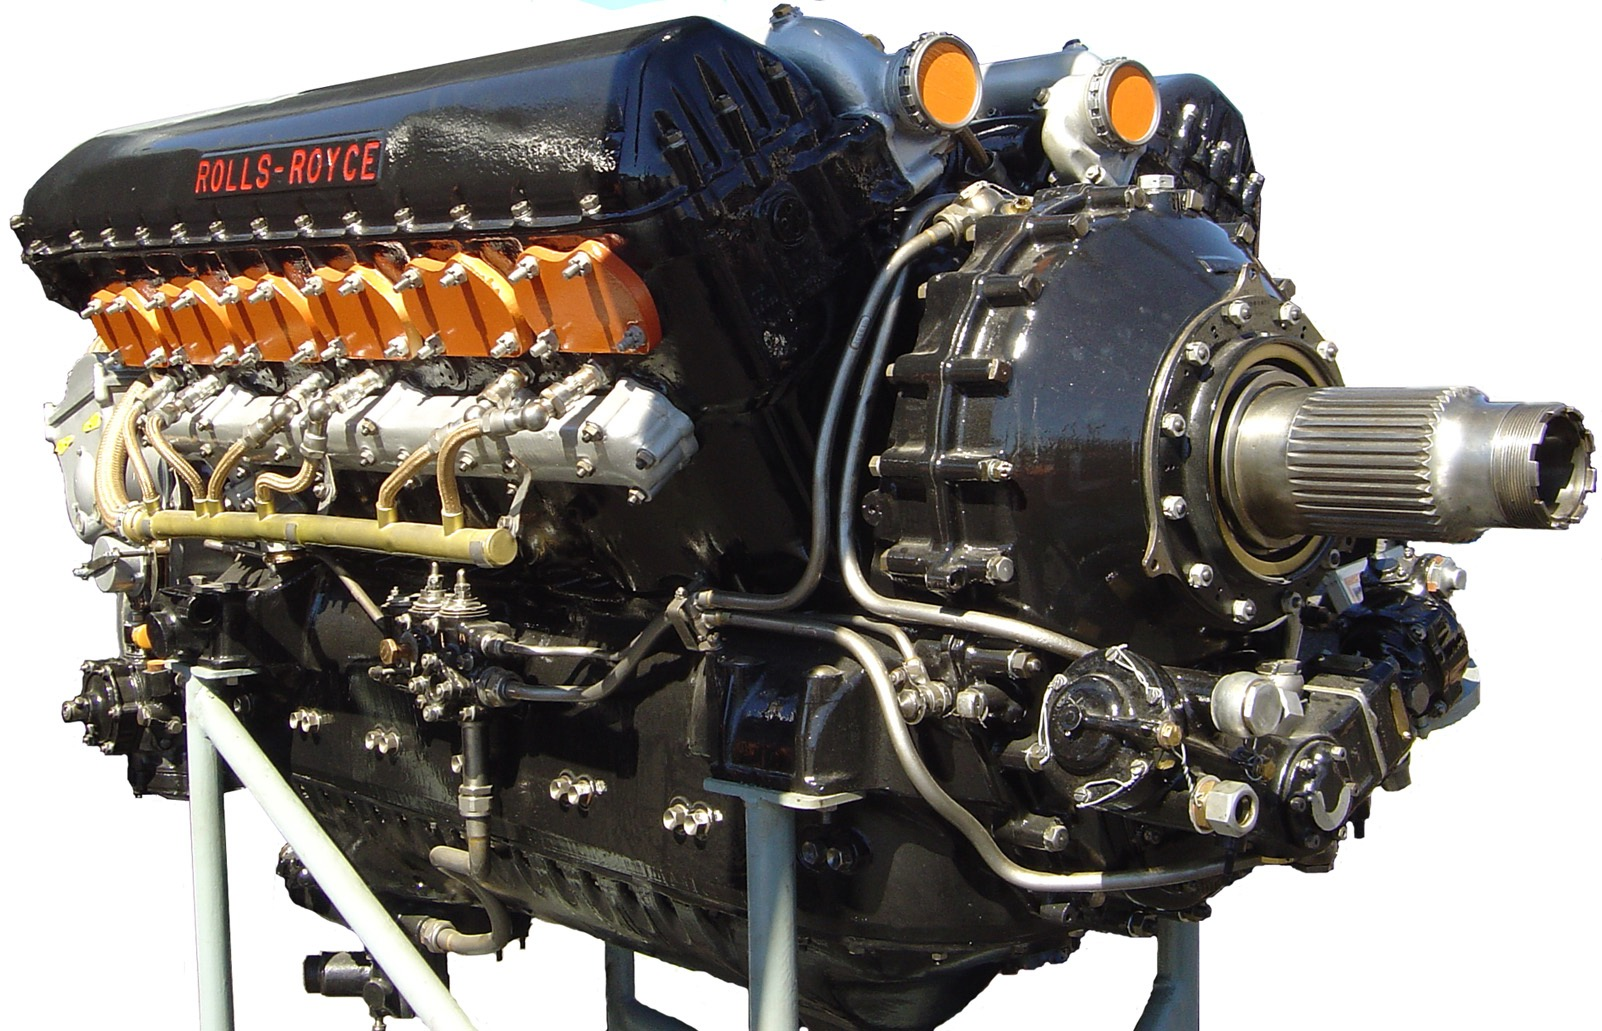 File:Rolls-Royce Merlin.jpg - Wikimedia Commons